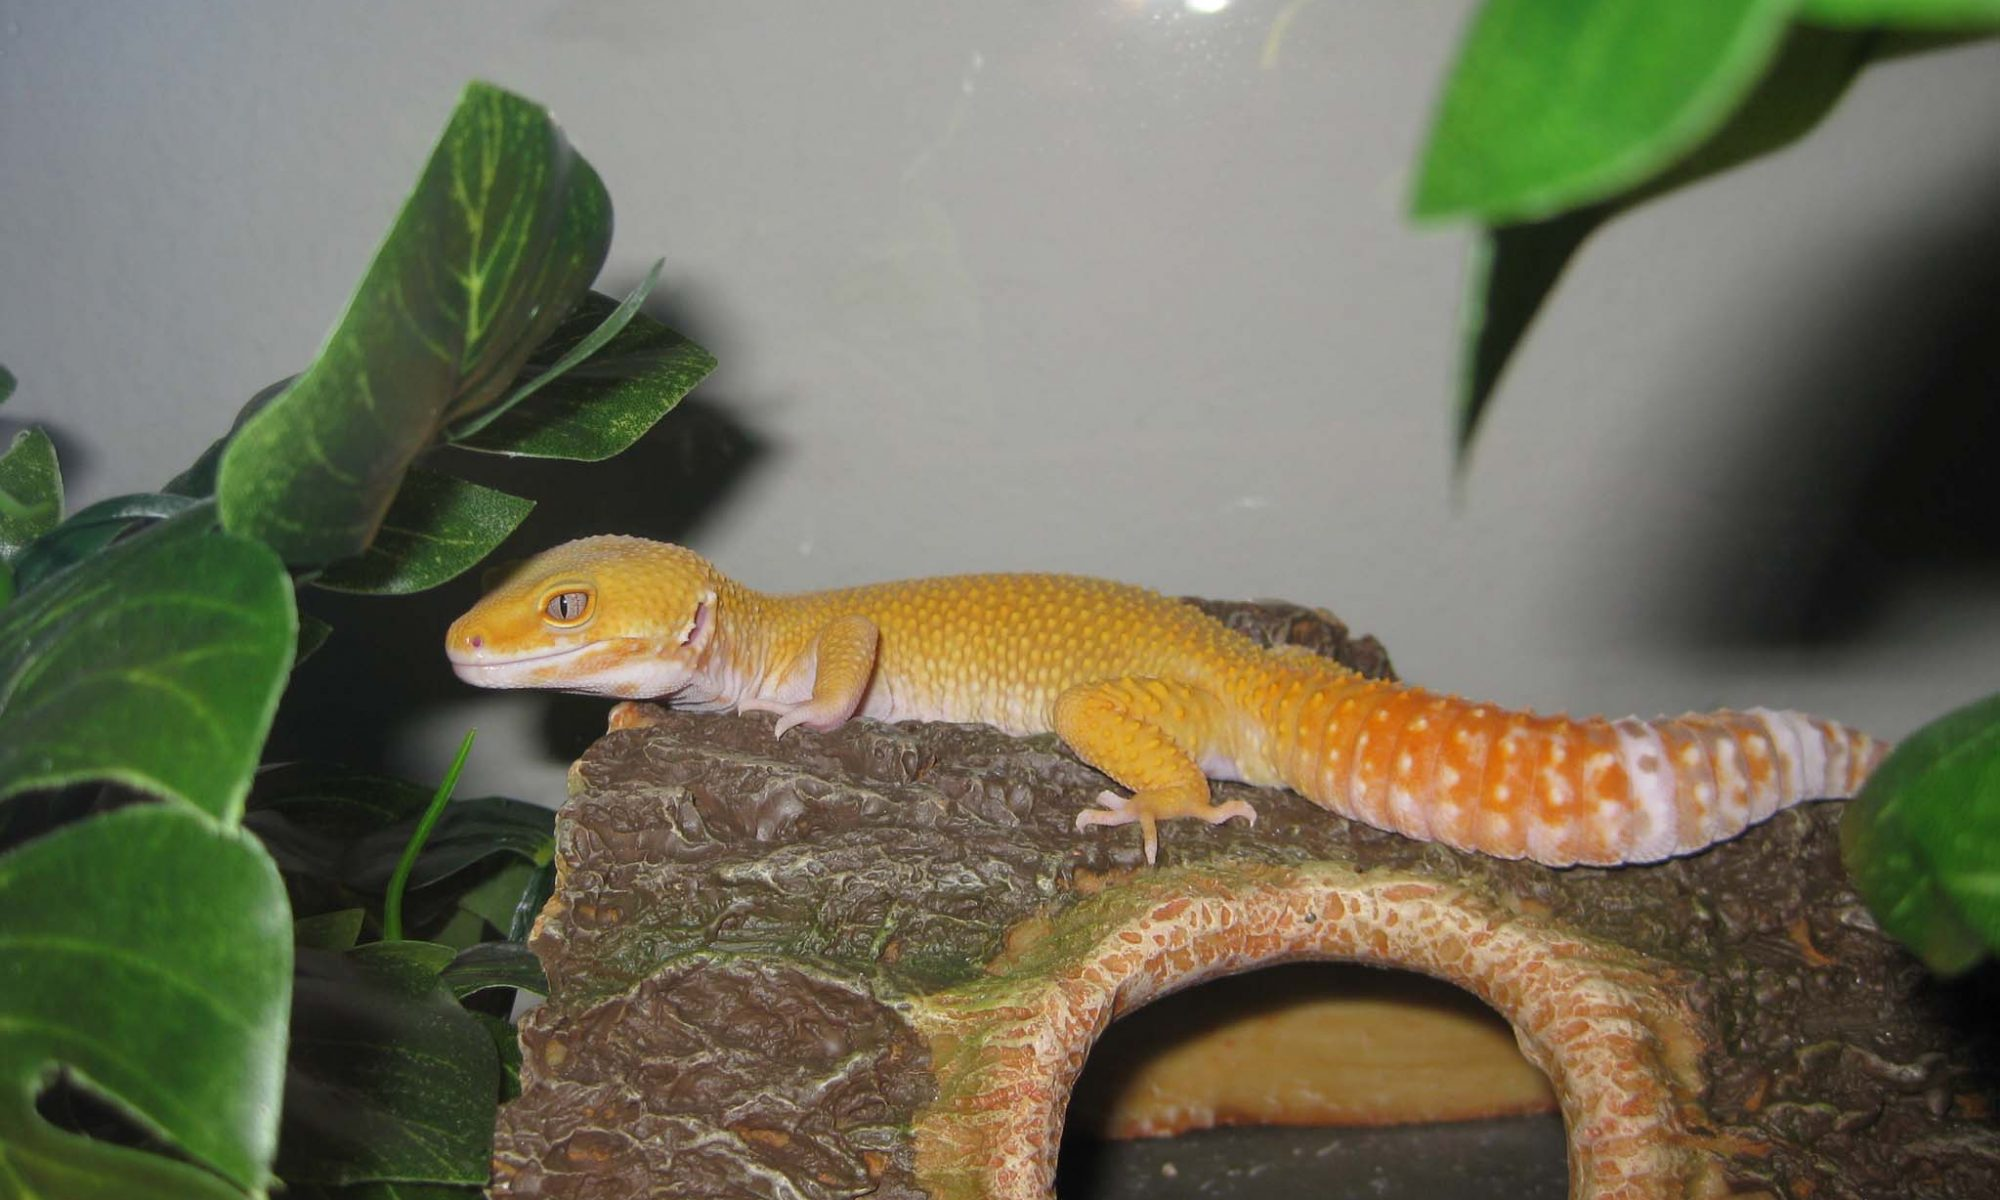 leopard gecko vitamin supplements calcium multivitamin dusting feeders giant tremper sunglow